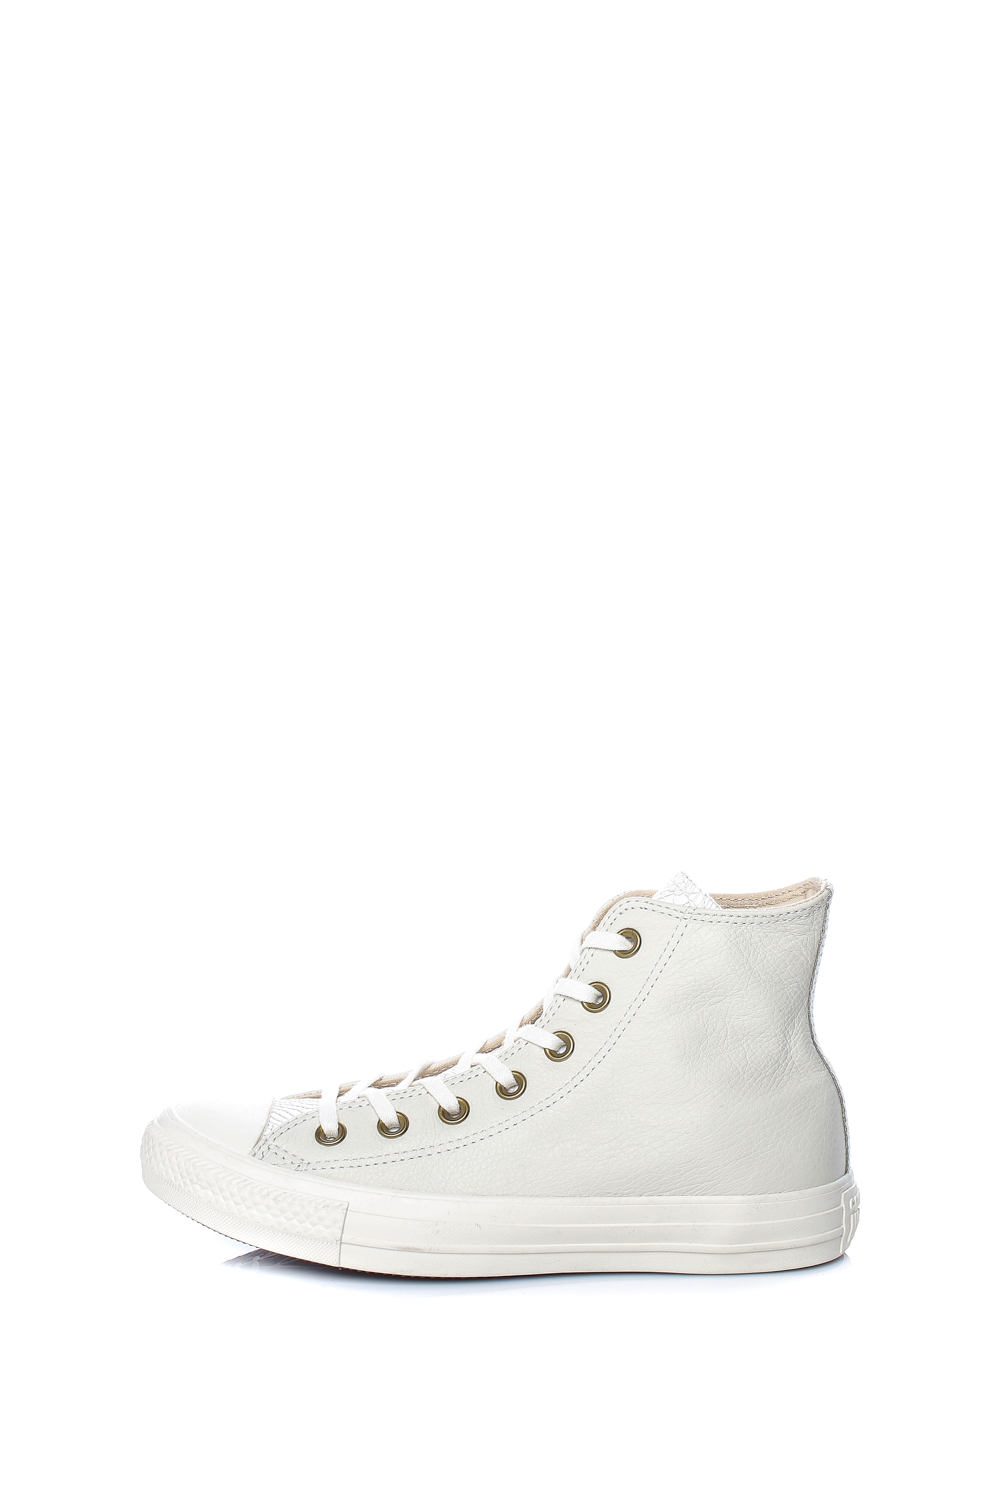 Collective Online CONVERSE – Γυναικεία δερμάτινα μποτάκια Chuck Taylor All  Star Hi λευκά 39e4cd4debb